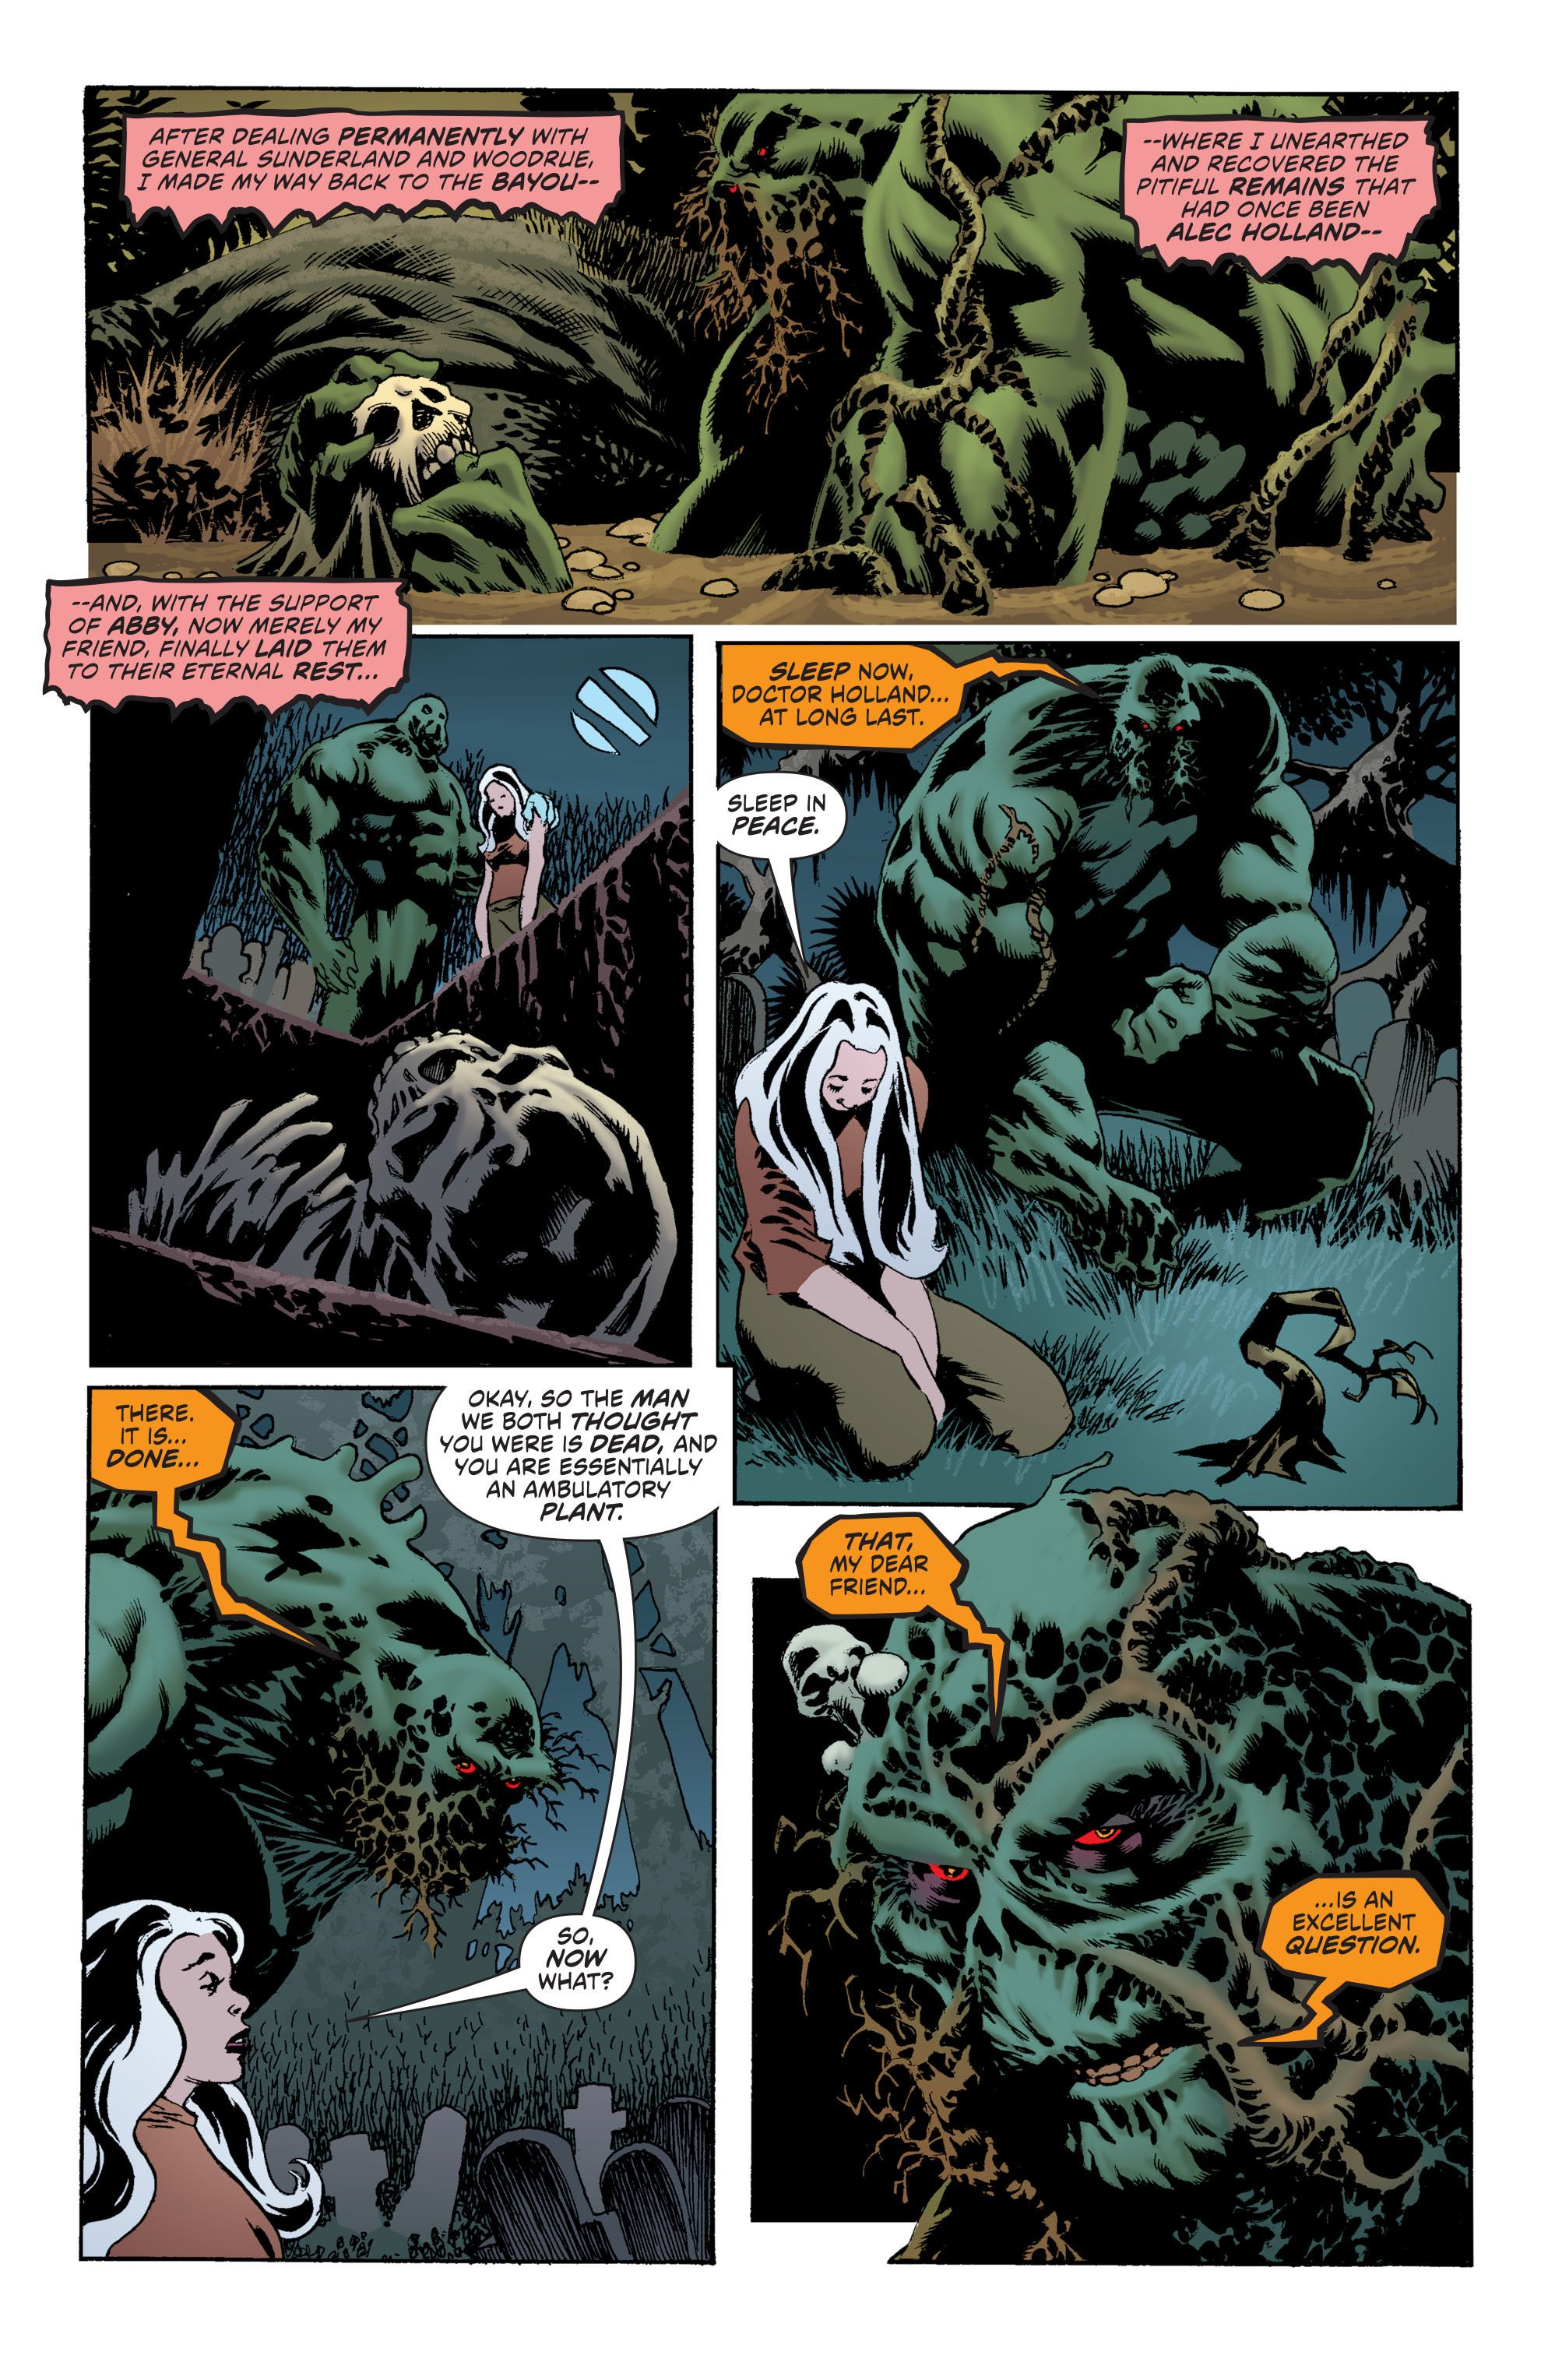 Convergence Swamp Thing Part 1 Album on Imgur (With